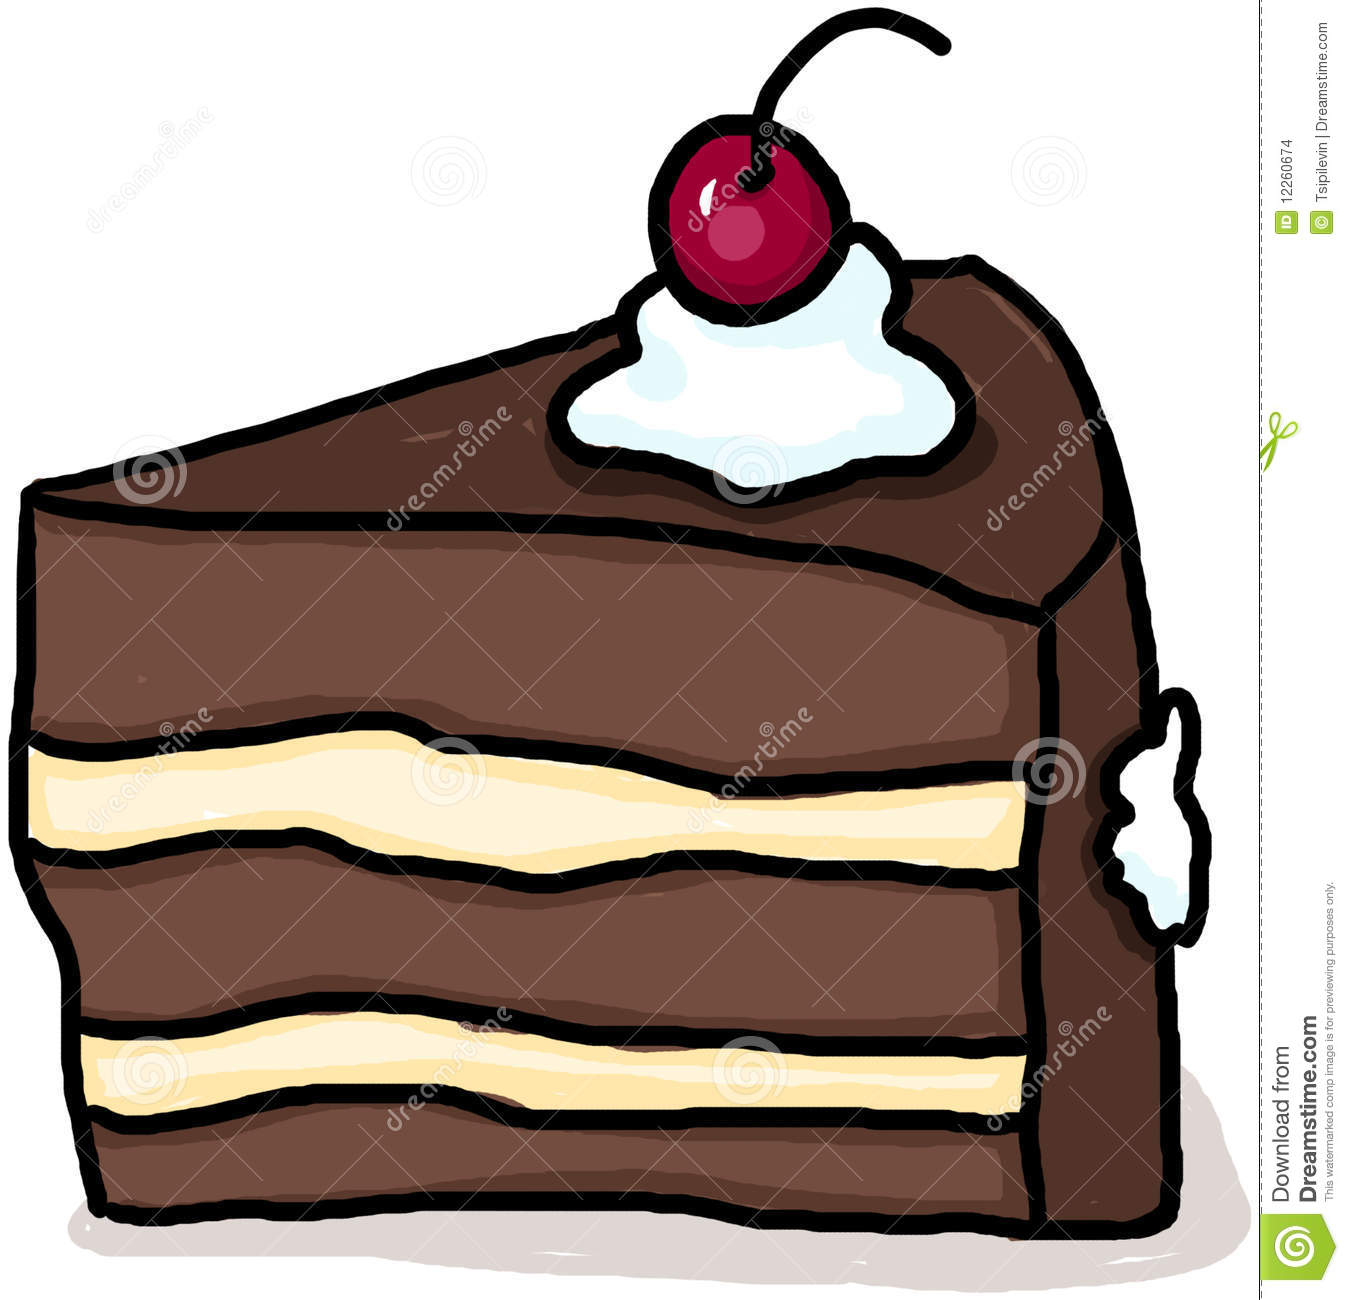 Drawn cake pastry Panda Clipart Clipart Images Cake